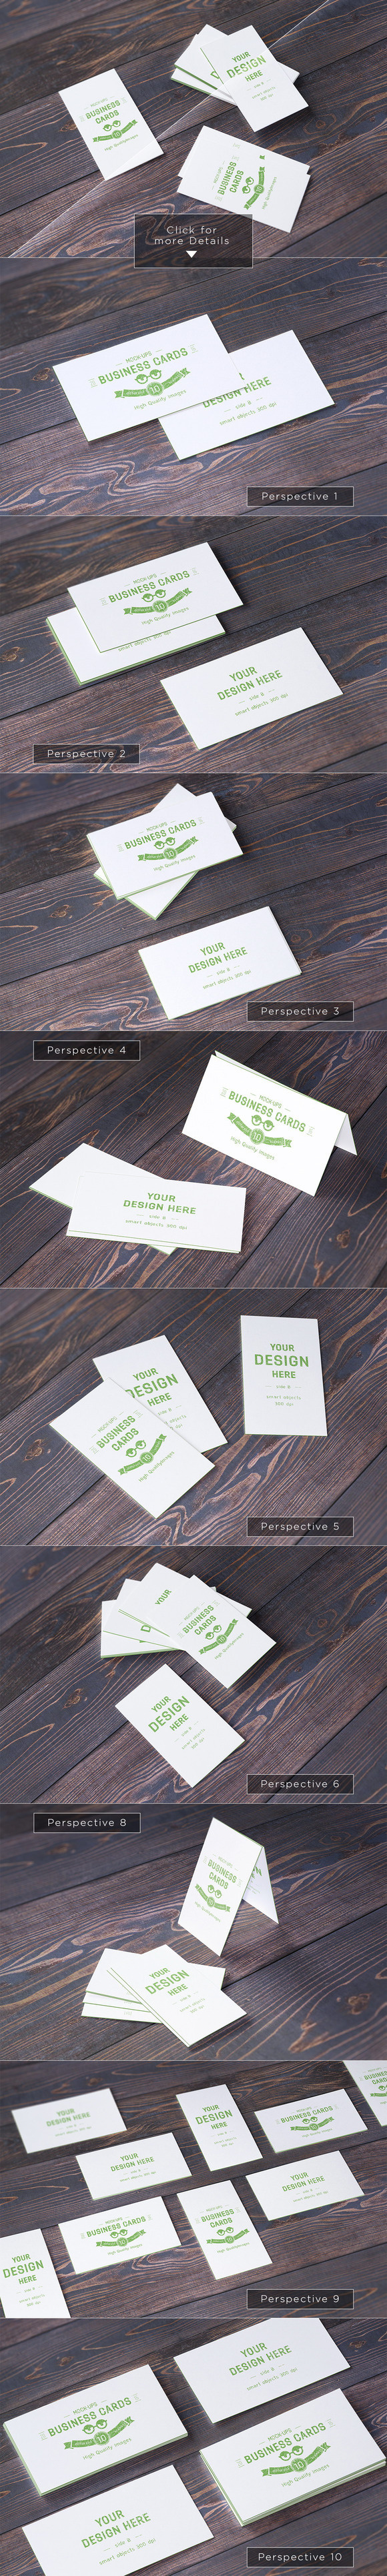 https://creativemarket.com/itembridge/235325-10-Realistic-Business-Card-Mock-ups You don't need any skill with Photoshop, just place your #dof #shadows #mock #business #photo #design #presentation #paper #up #realistic #template #cards